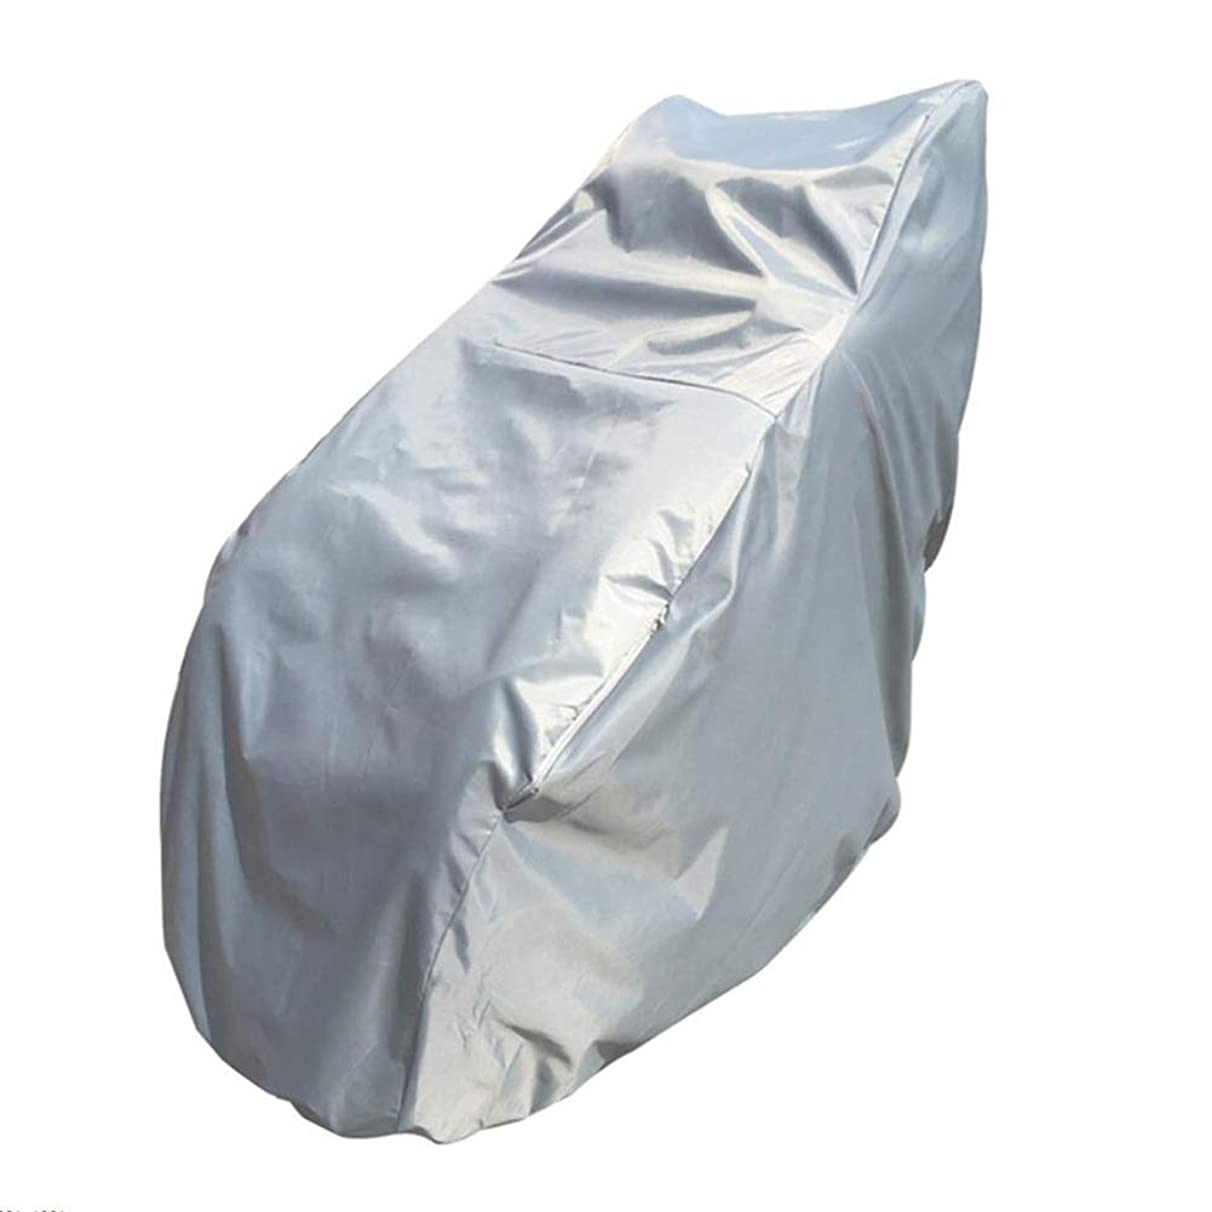 Massage Chair Covers Garden Furniture Moisture Proof Dust-Proof, Multiple Sizes Available, WenMing Yue, Silver, 95x155x135CM